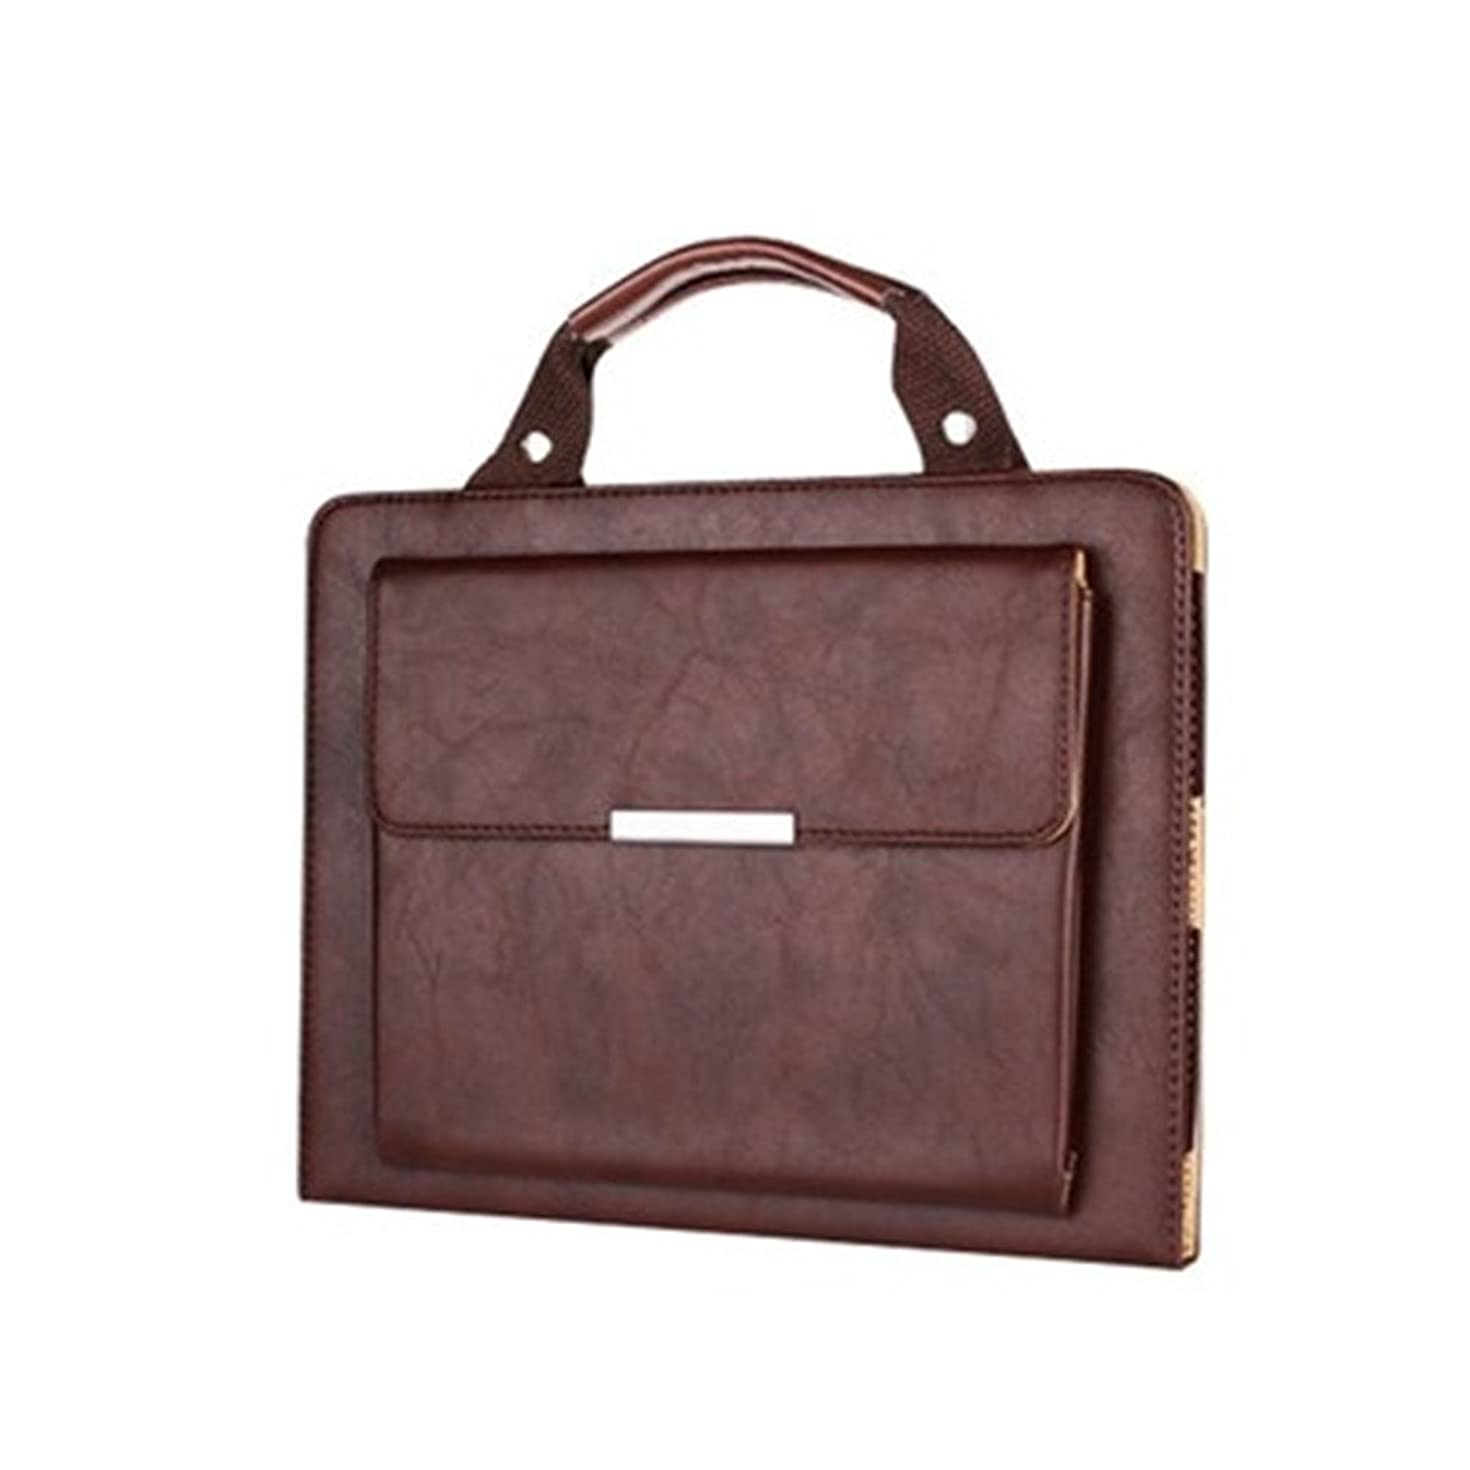 iPad Air 2 Case Bag,Ultra Portable Handle Carrying Leather Sleeve Case Bag Executive Smart Cover Built-in Flip Stand-Sleep/Wake Up Feature with Outside Pocket for Apple iPad Air 2 (iPad 6)-Brown